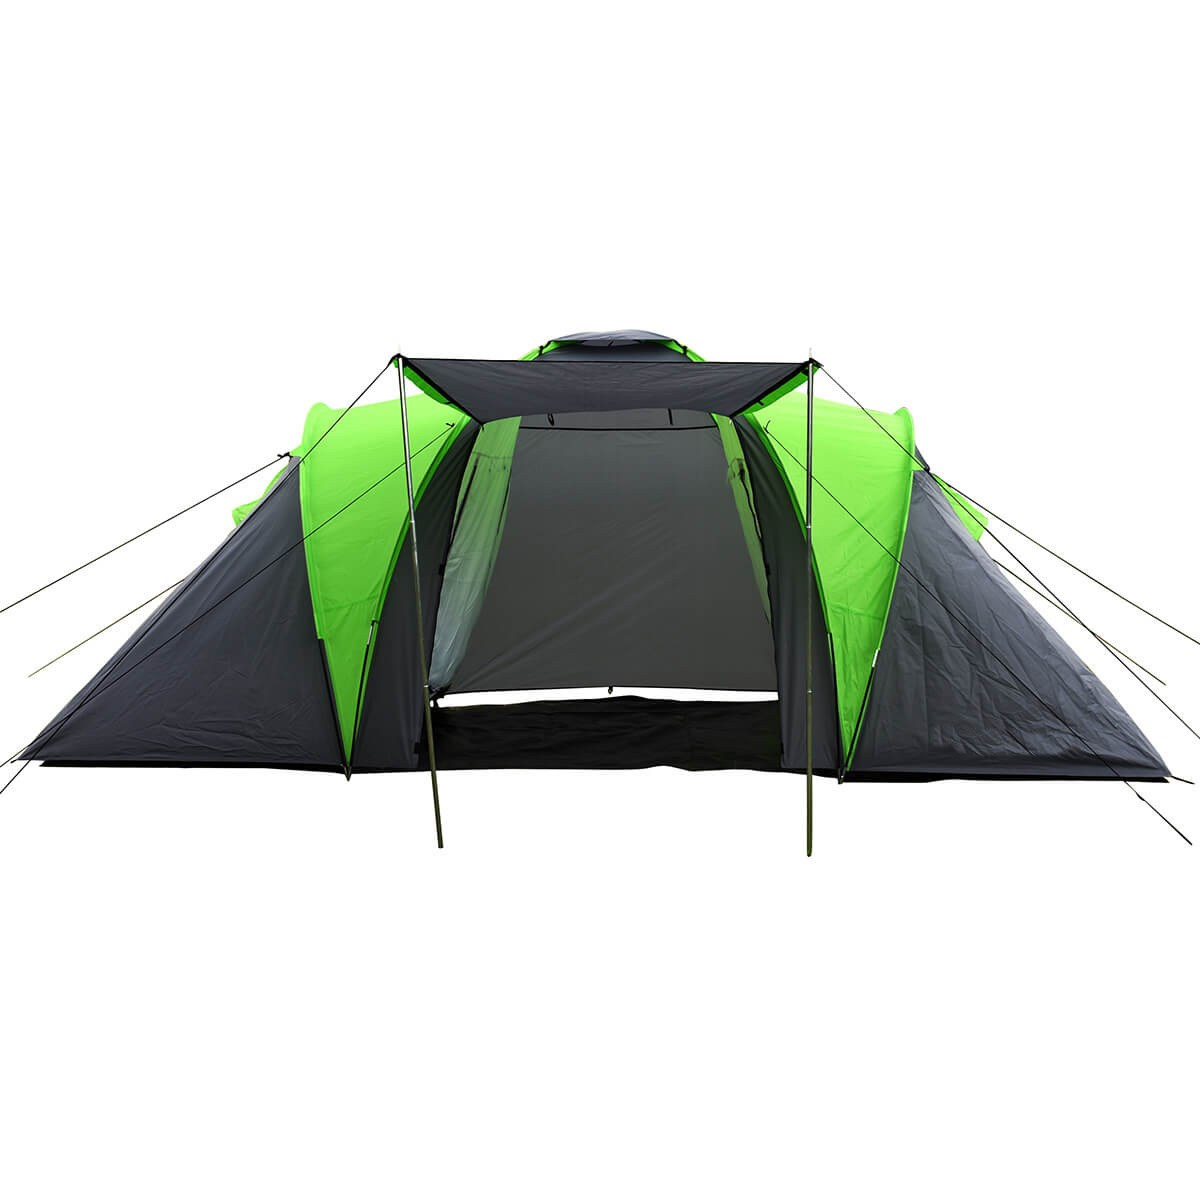 4 Berth Tent With Awning Savvysurf Co Uk